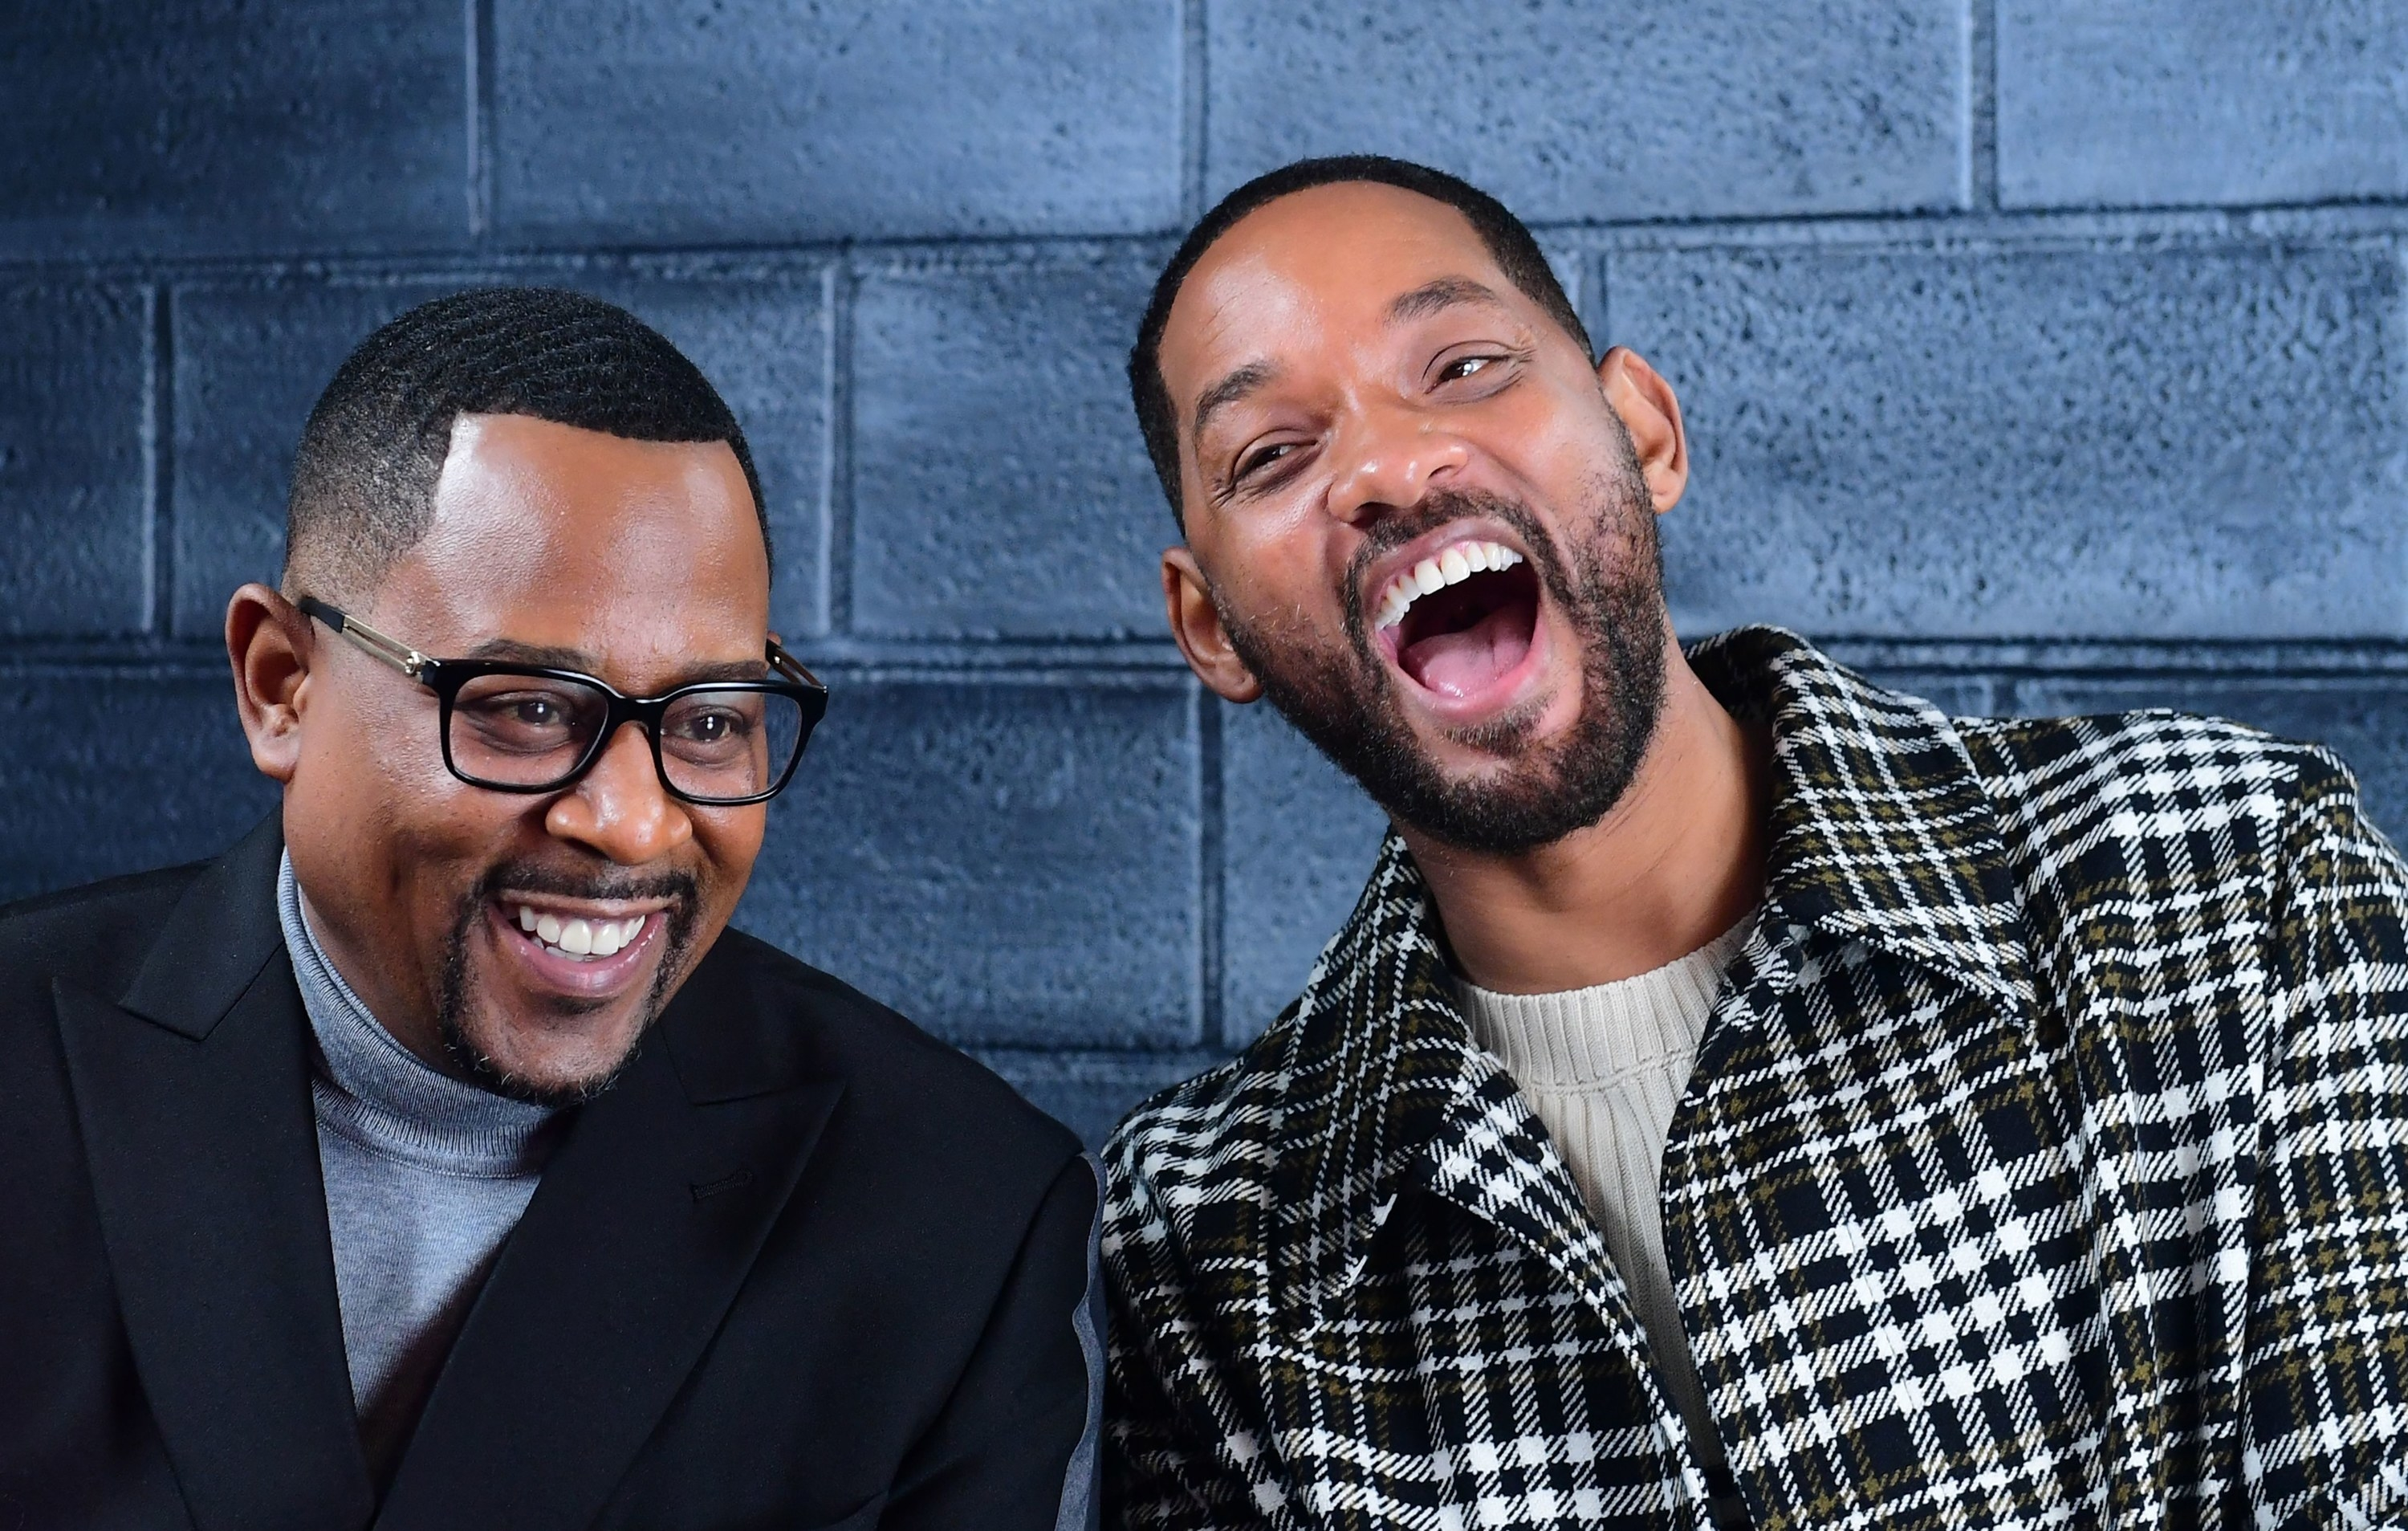 With Martin Lawrence, both laughing